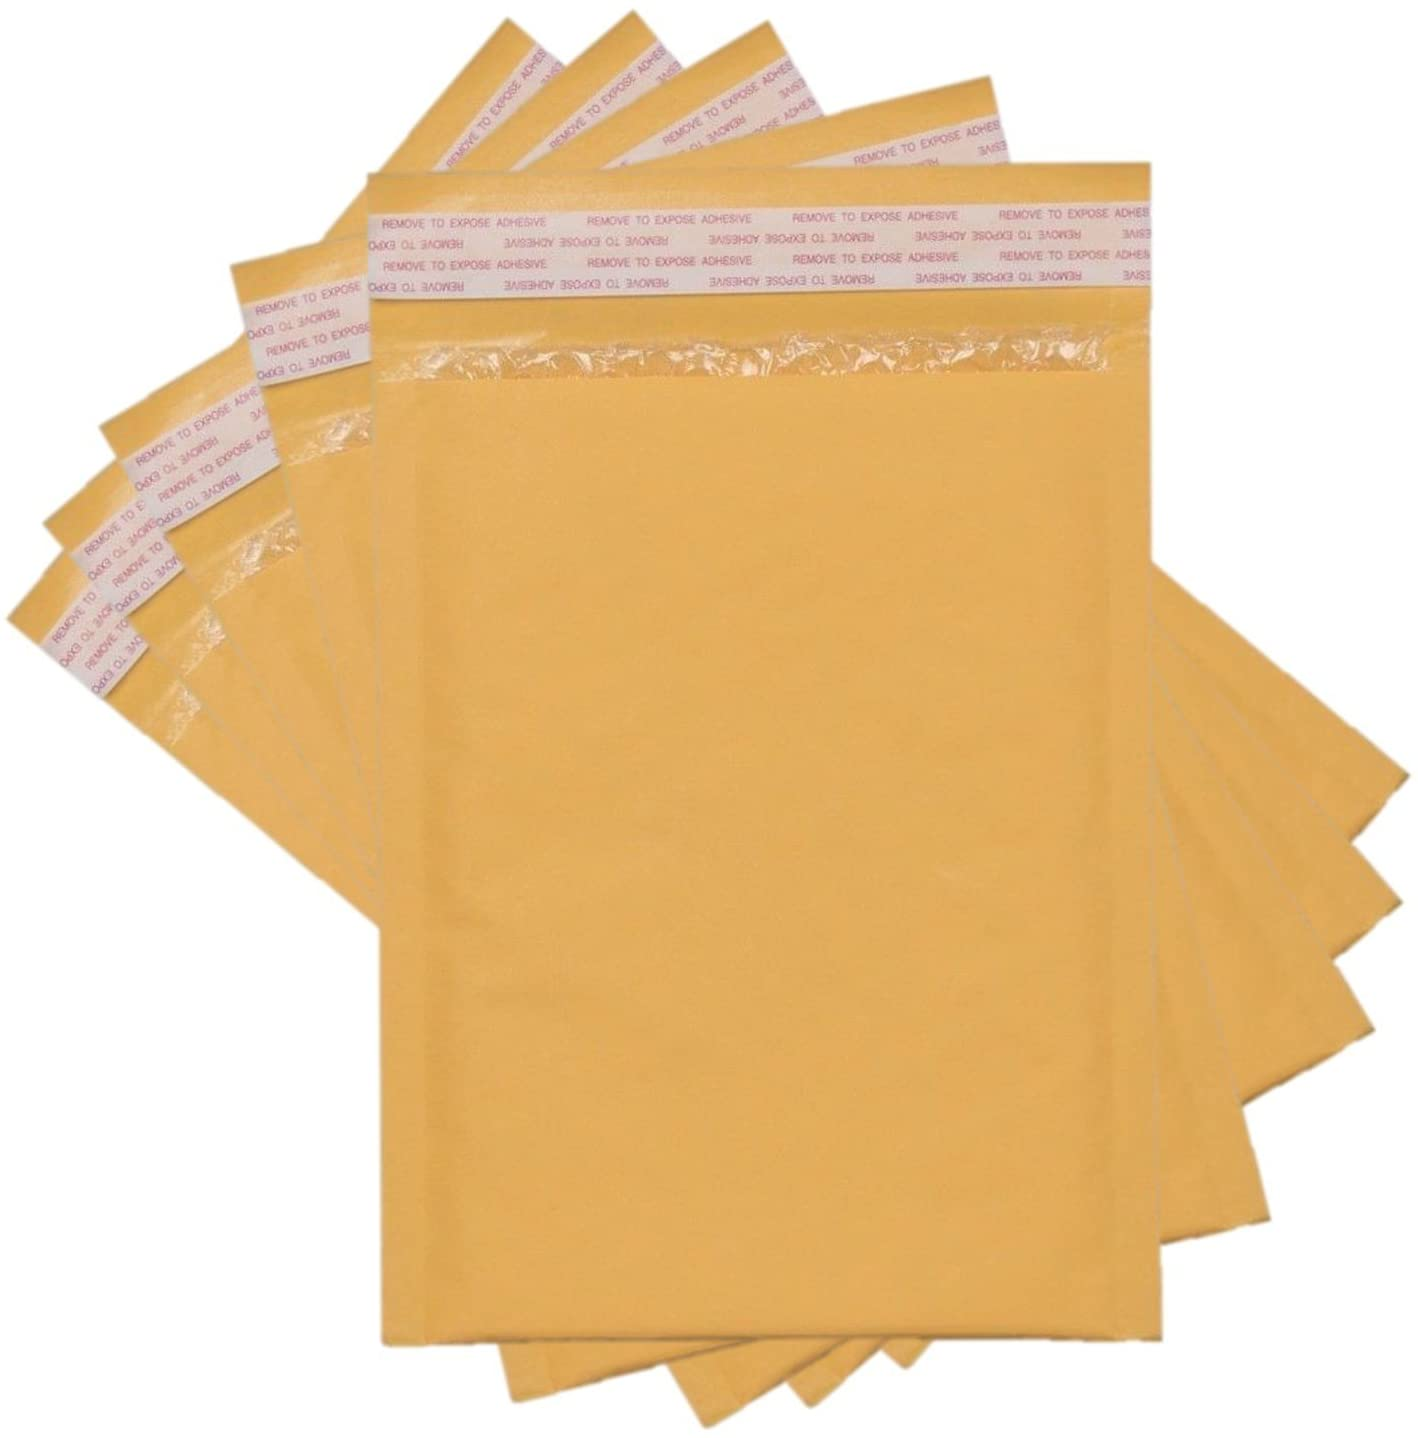 25 Pack #7 14.25x20 Blue Poly Bubble Mailers Padded Mailing Envelope Shipping Bags 14.25 x 20